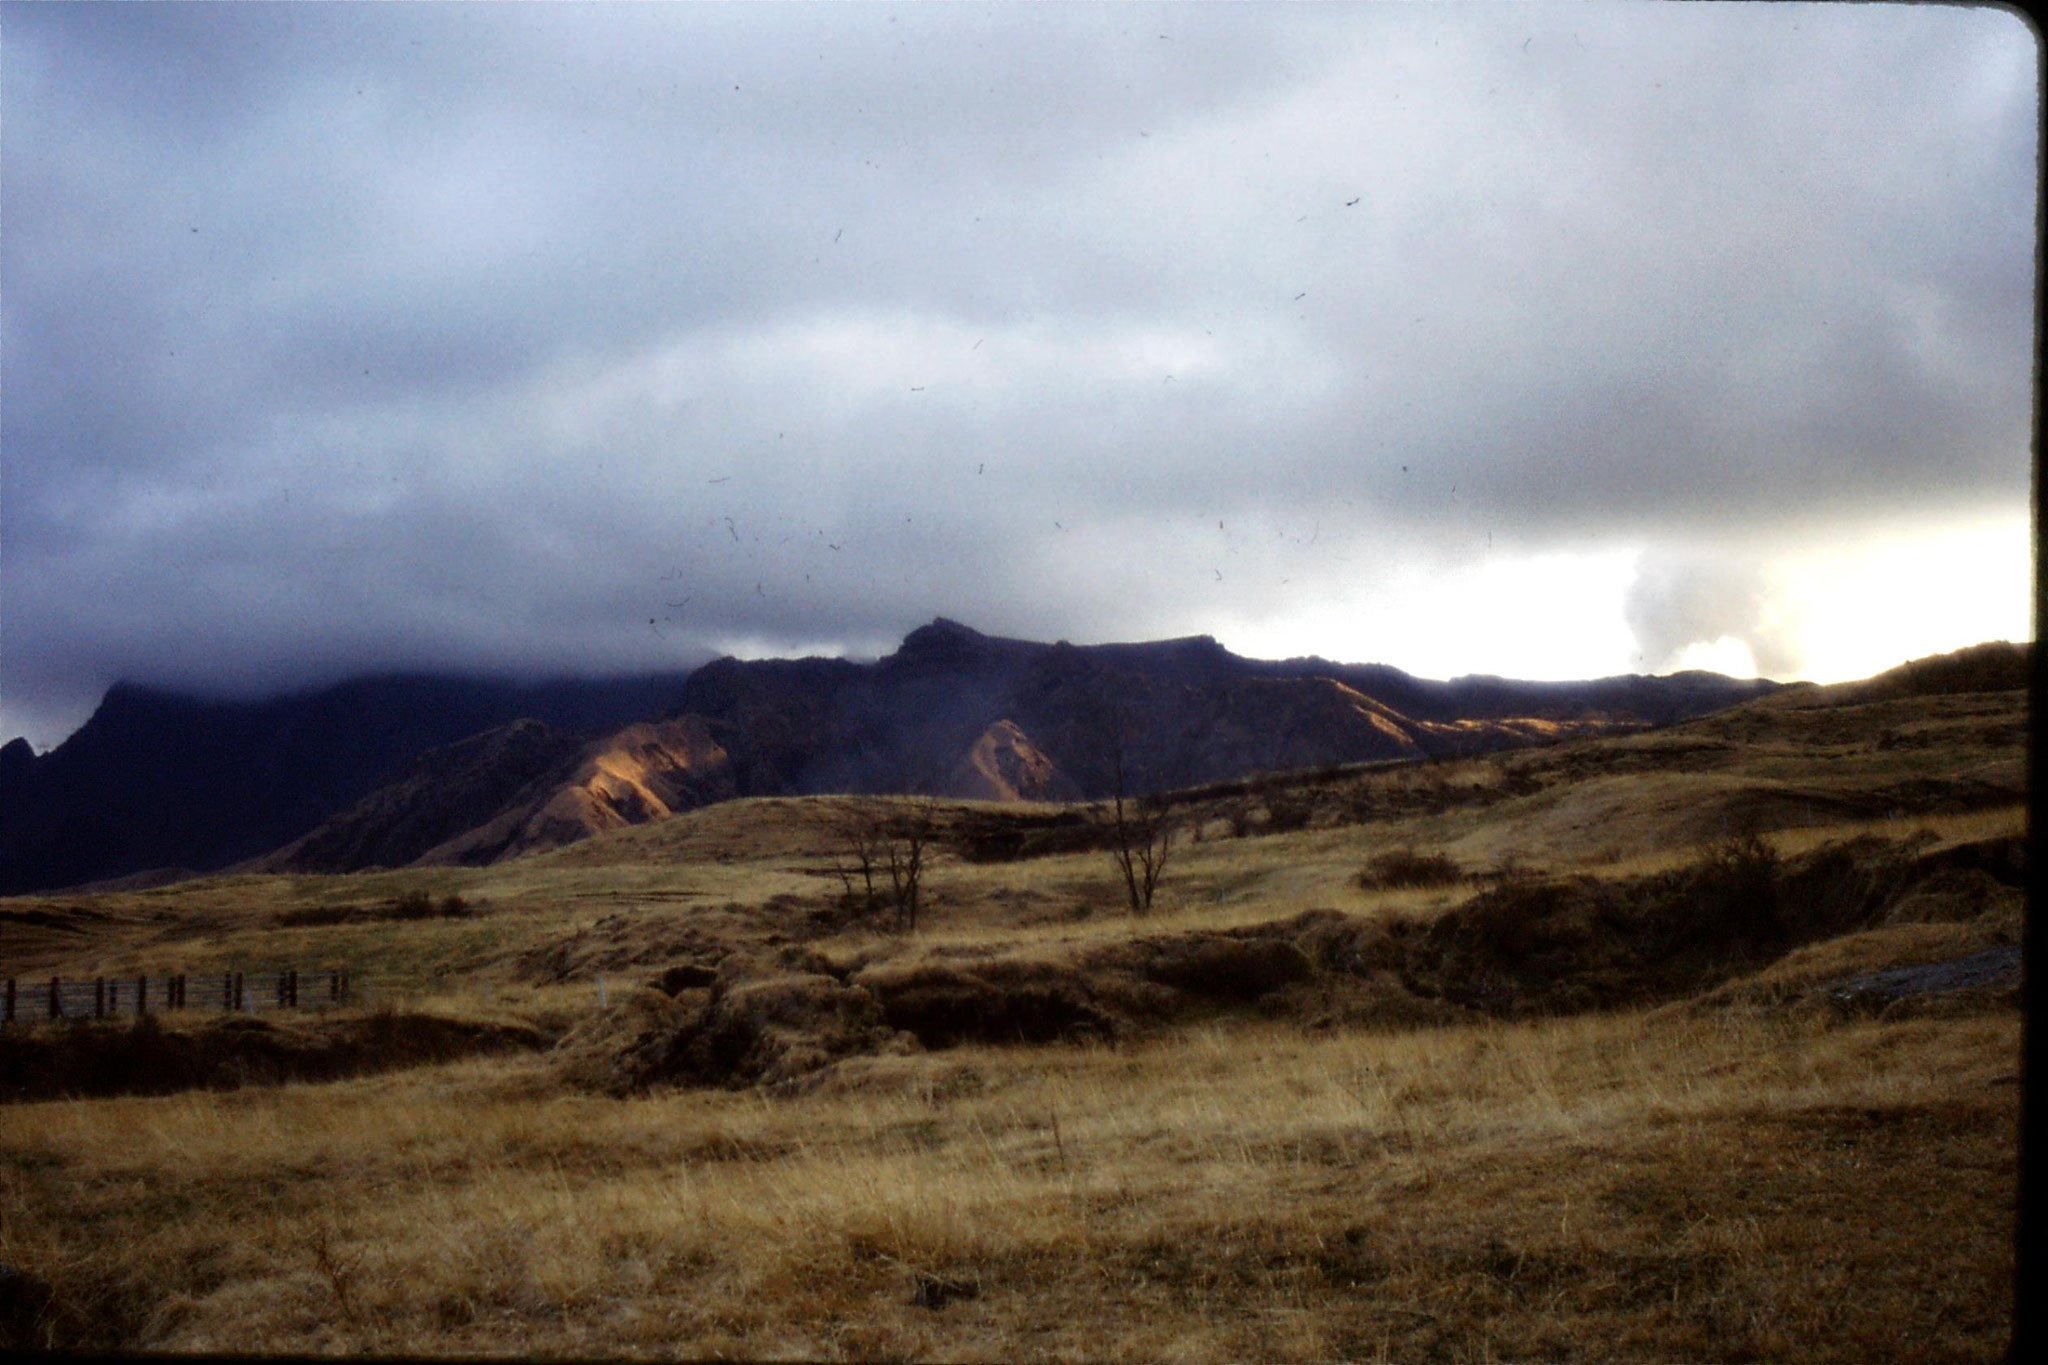 21/1/1989: 0: view from Aso of Aso San late afternoon, Takadate on left in cloud